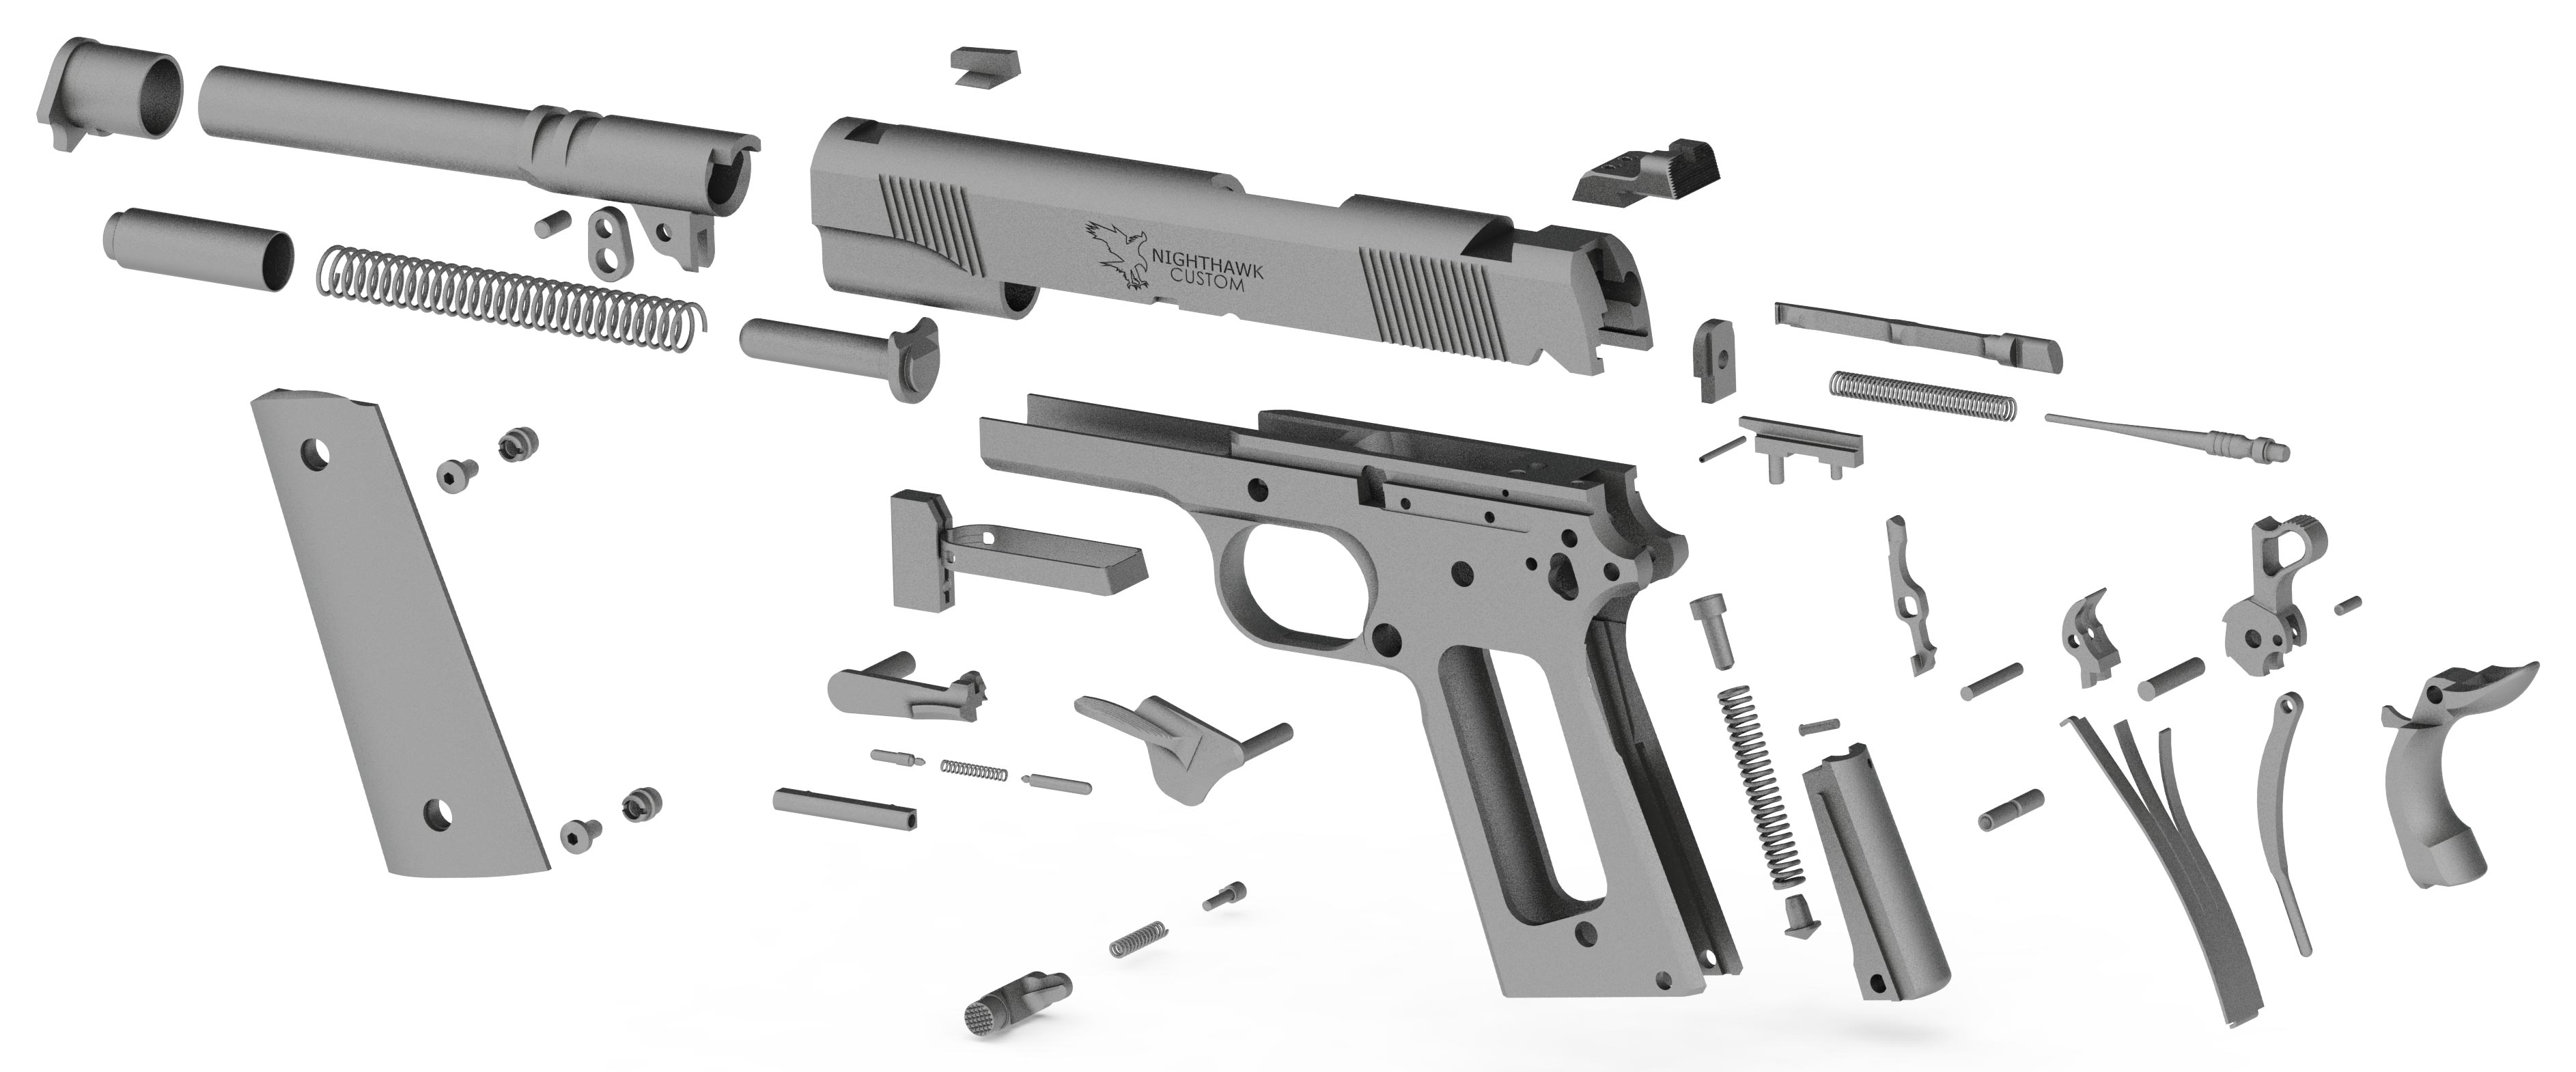 Nighthawk Custom Parts and Accessories including    1911       Grips